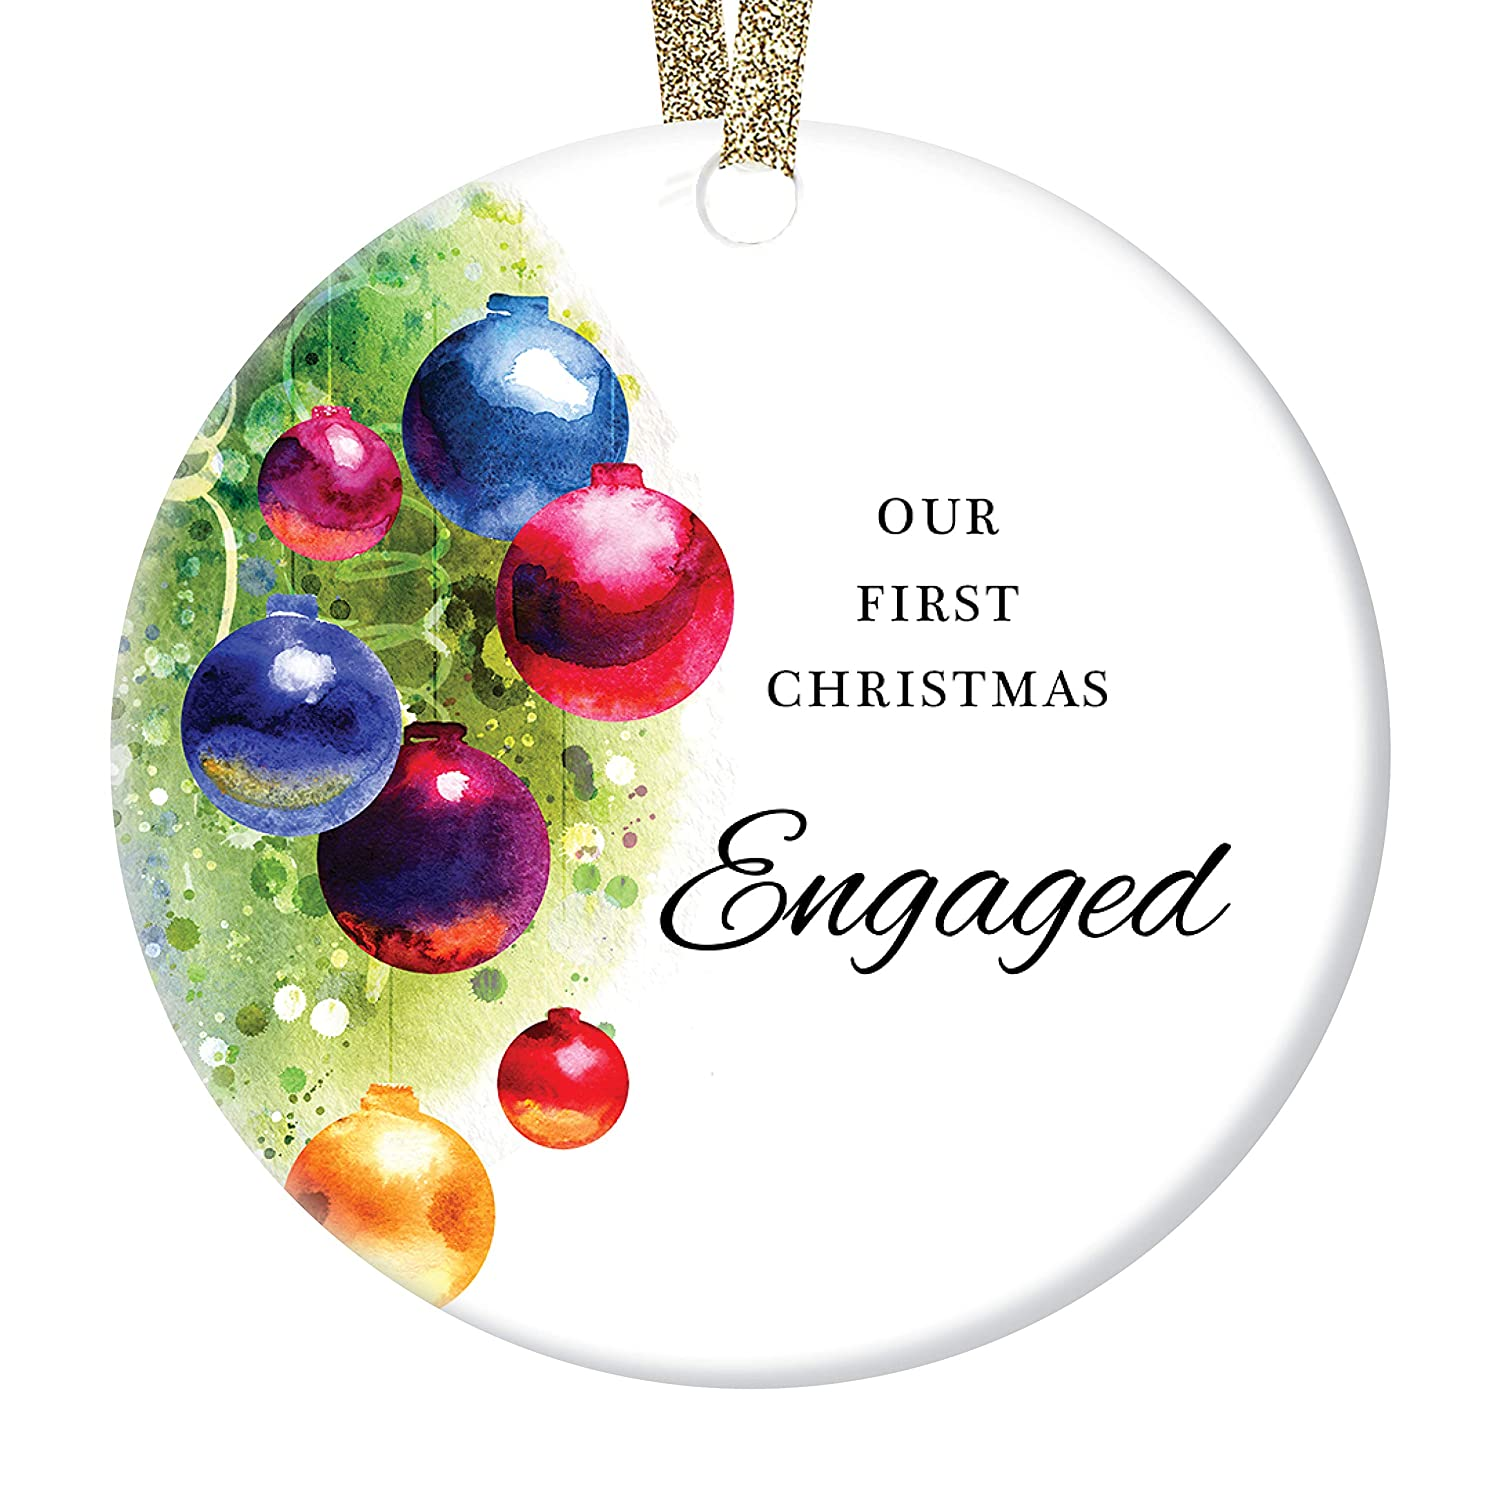 DIGIBUDDHA Super intense SALE Our 1st Christmas Engaged Ornament Pretty First Holid Max 69% OFF